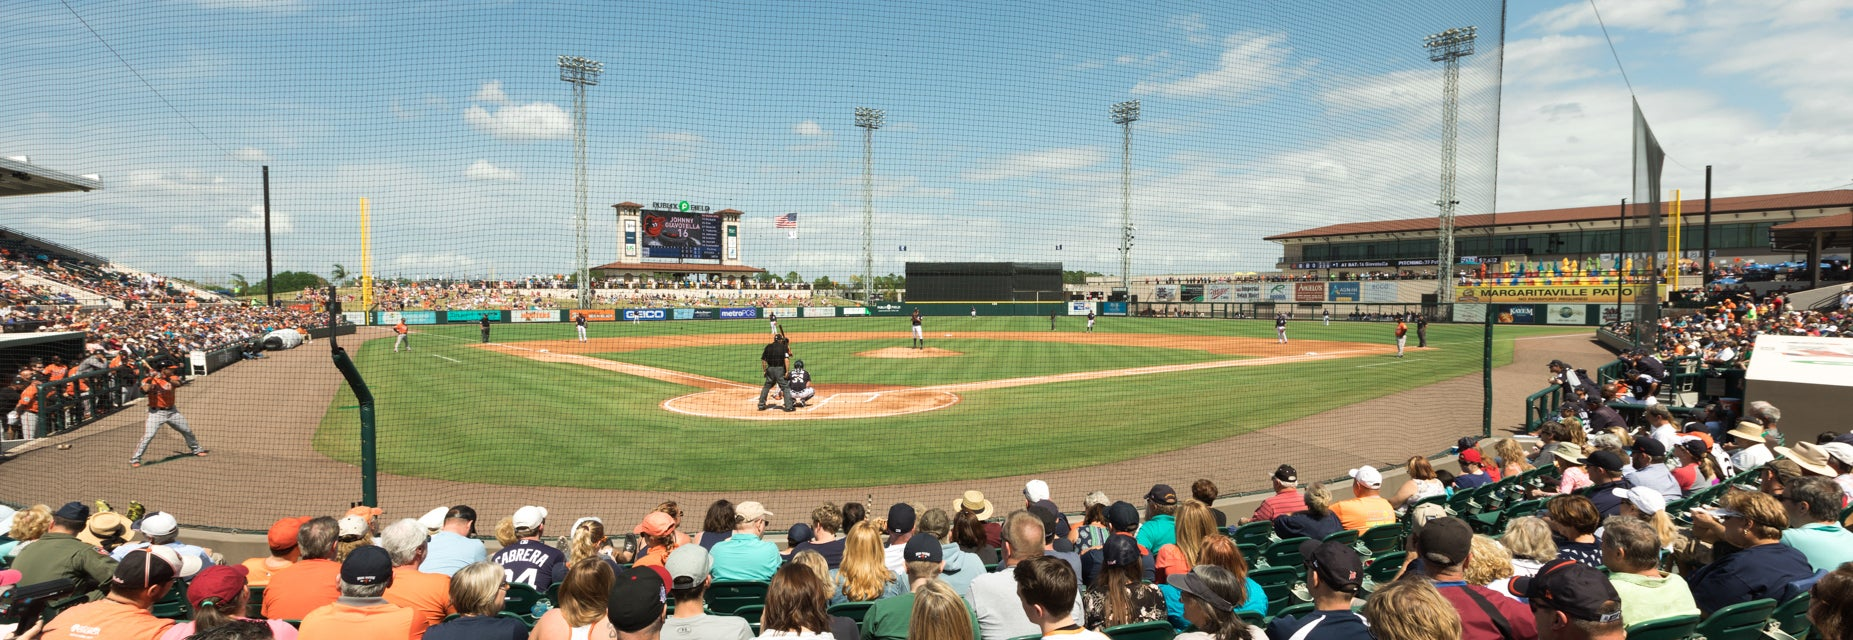 Tigers - Spring Training Tickets